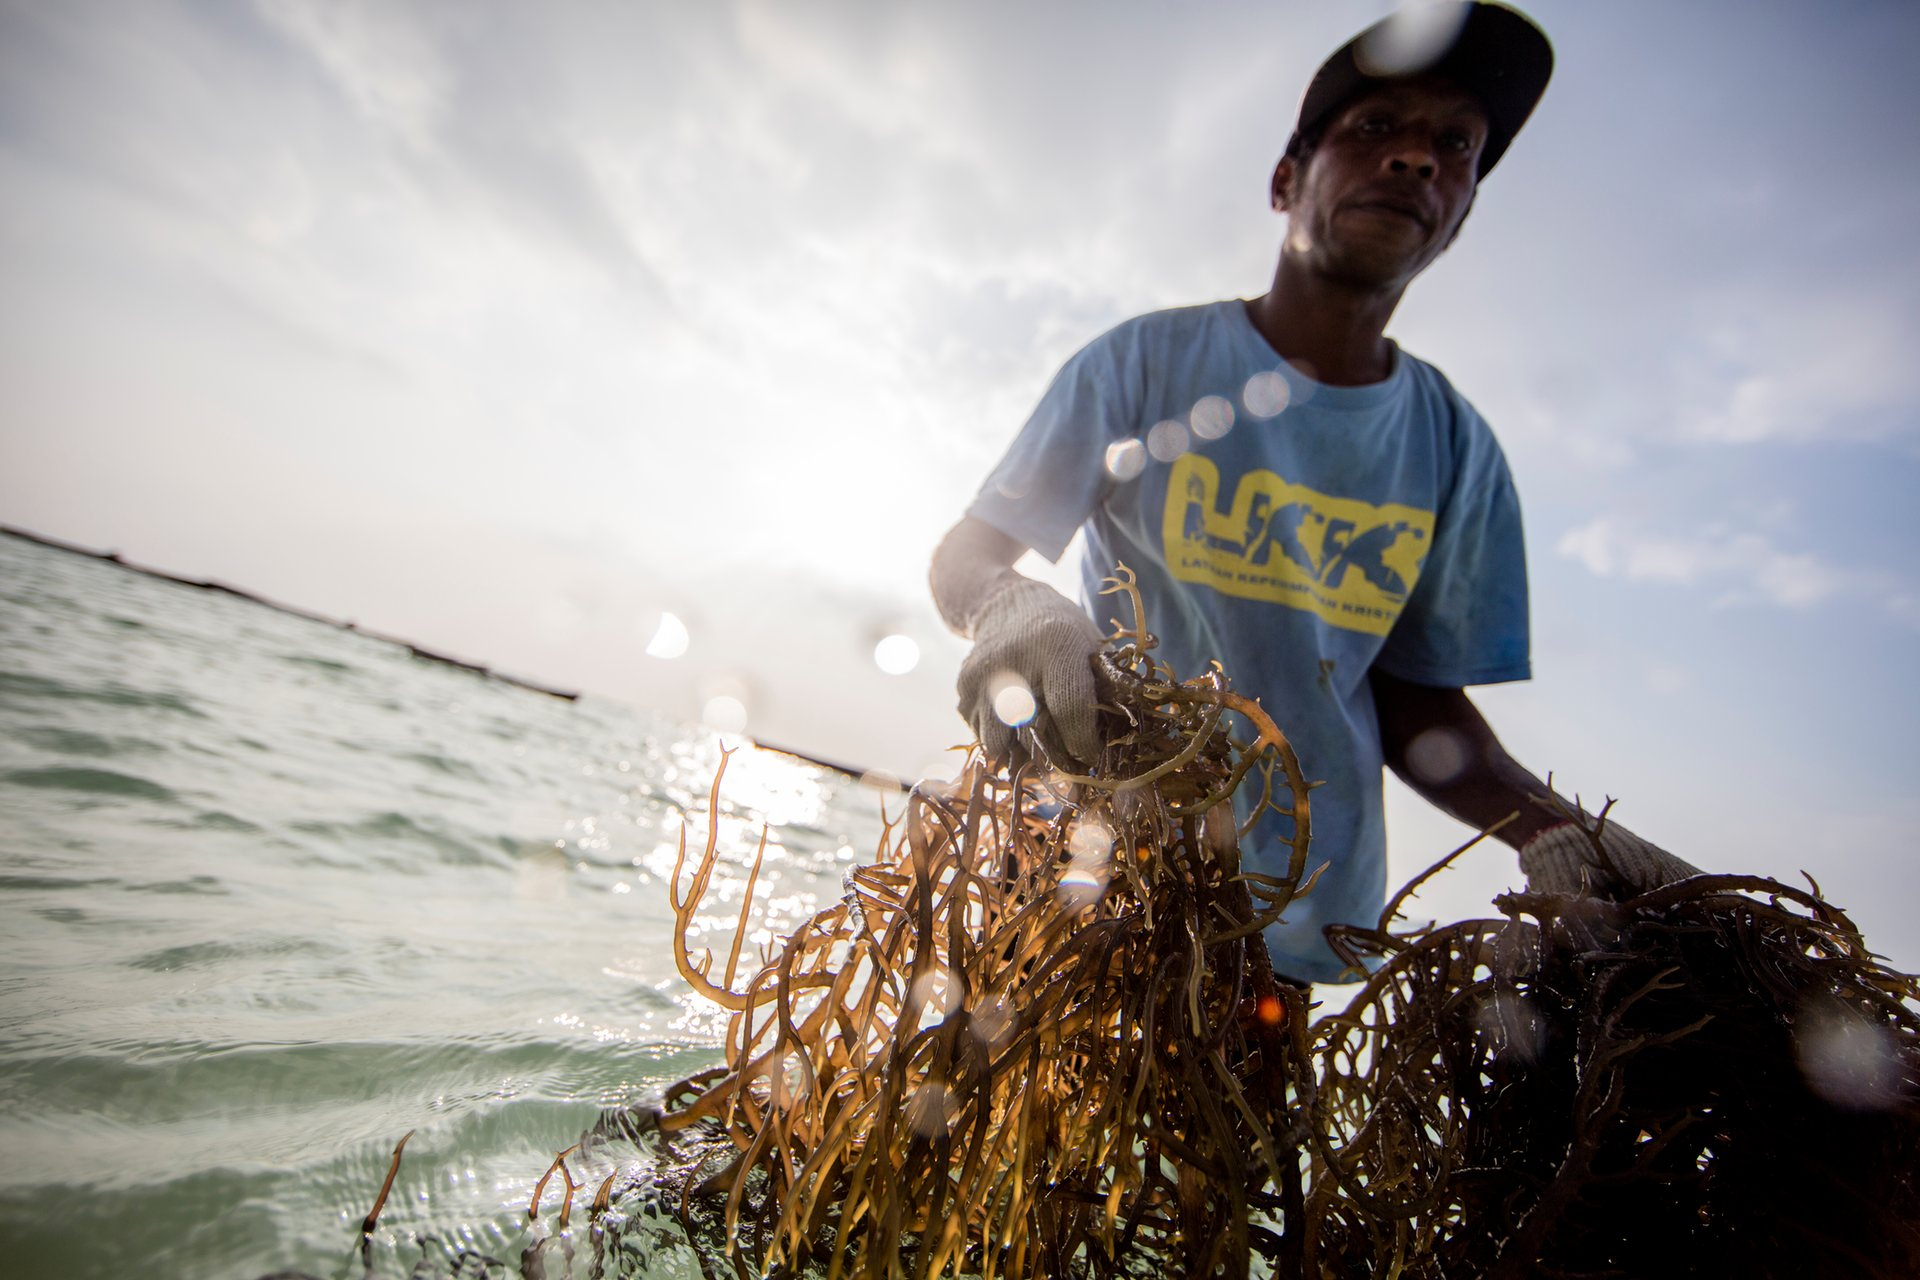 A seaweed farmer on Pasir Panjang beach. His group has agreed to stop harvesting hawksbill turtle eggs and seaweed farming offers a more sustainable alternative.